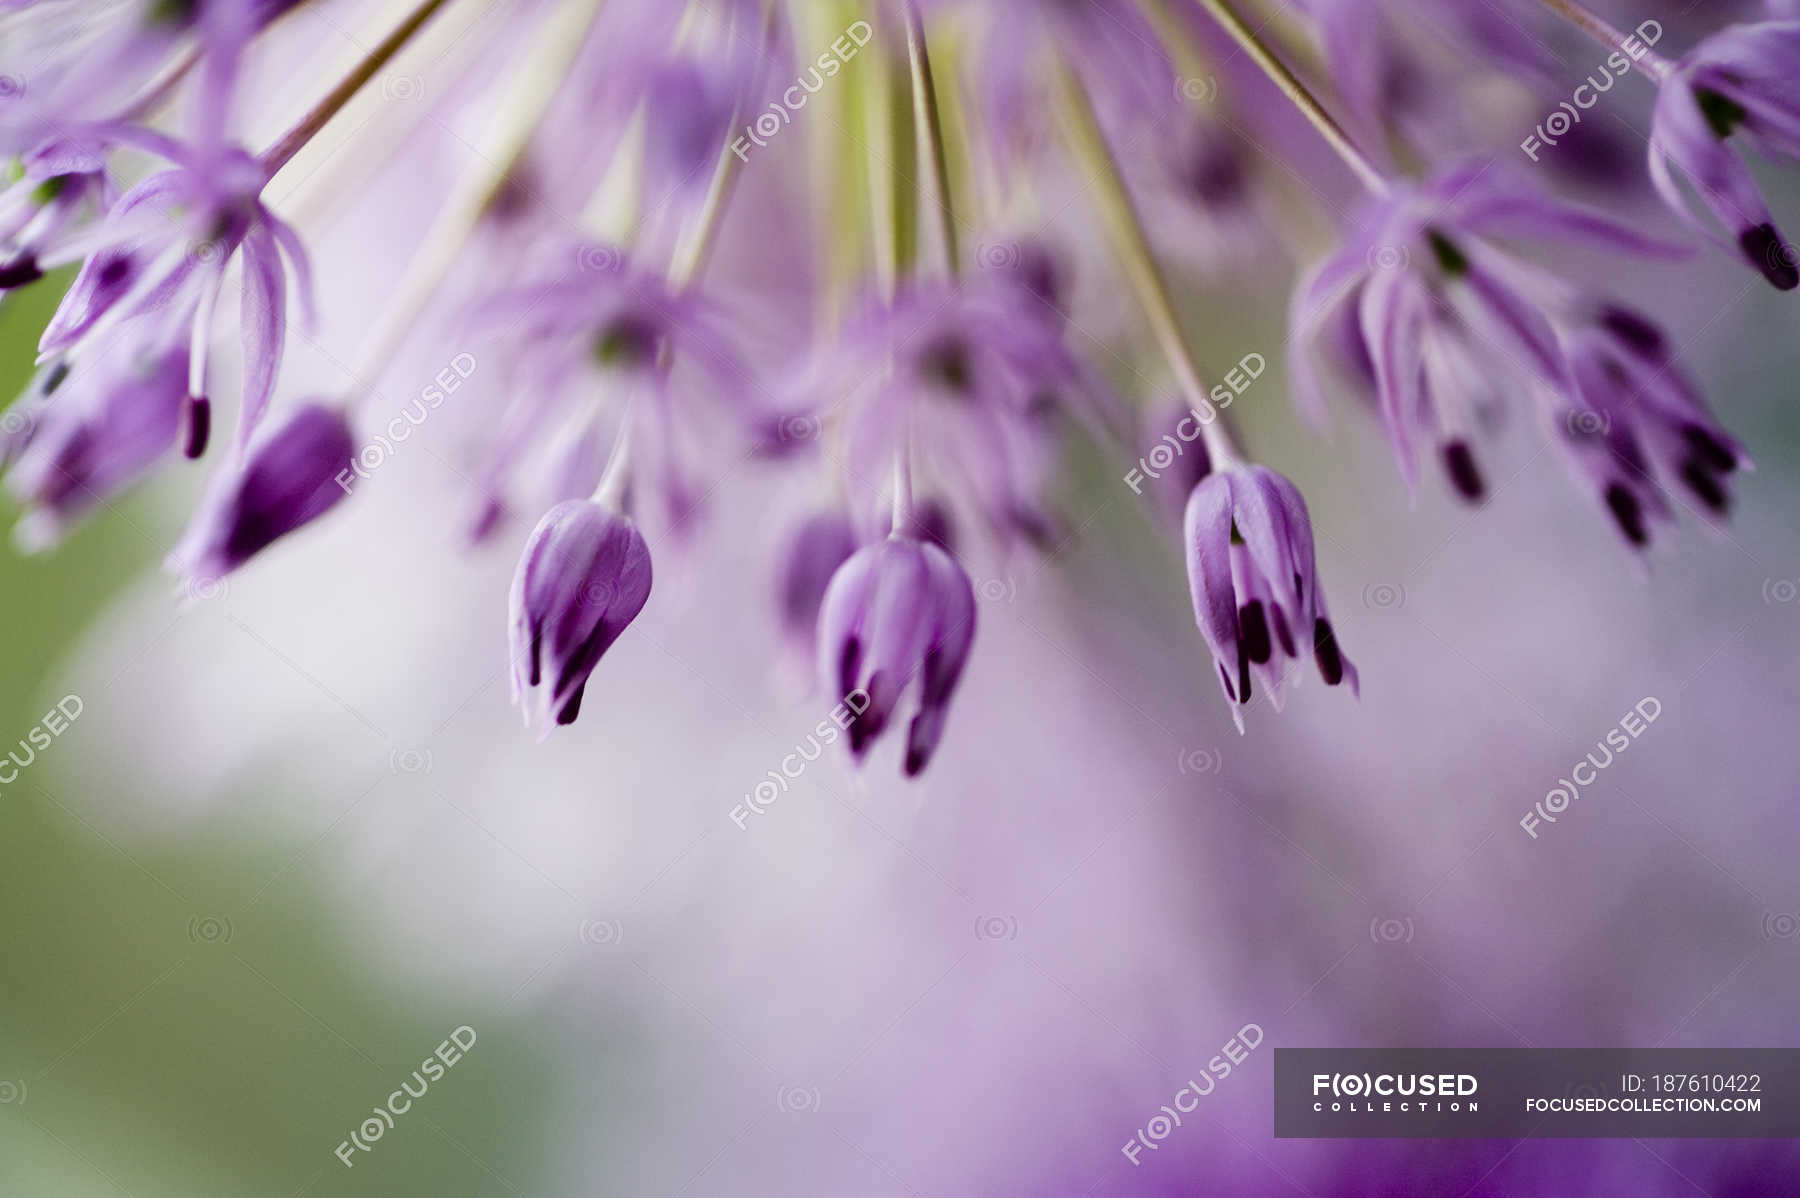 Close Up View Of Fresh Spring Flowers Stock Photo 187610422